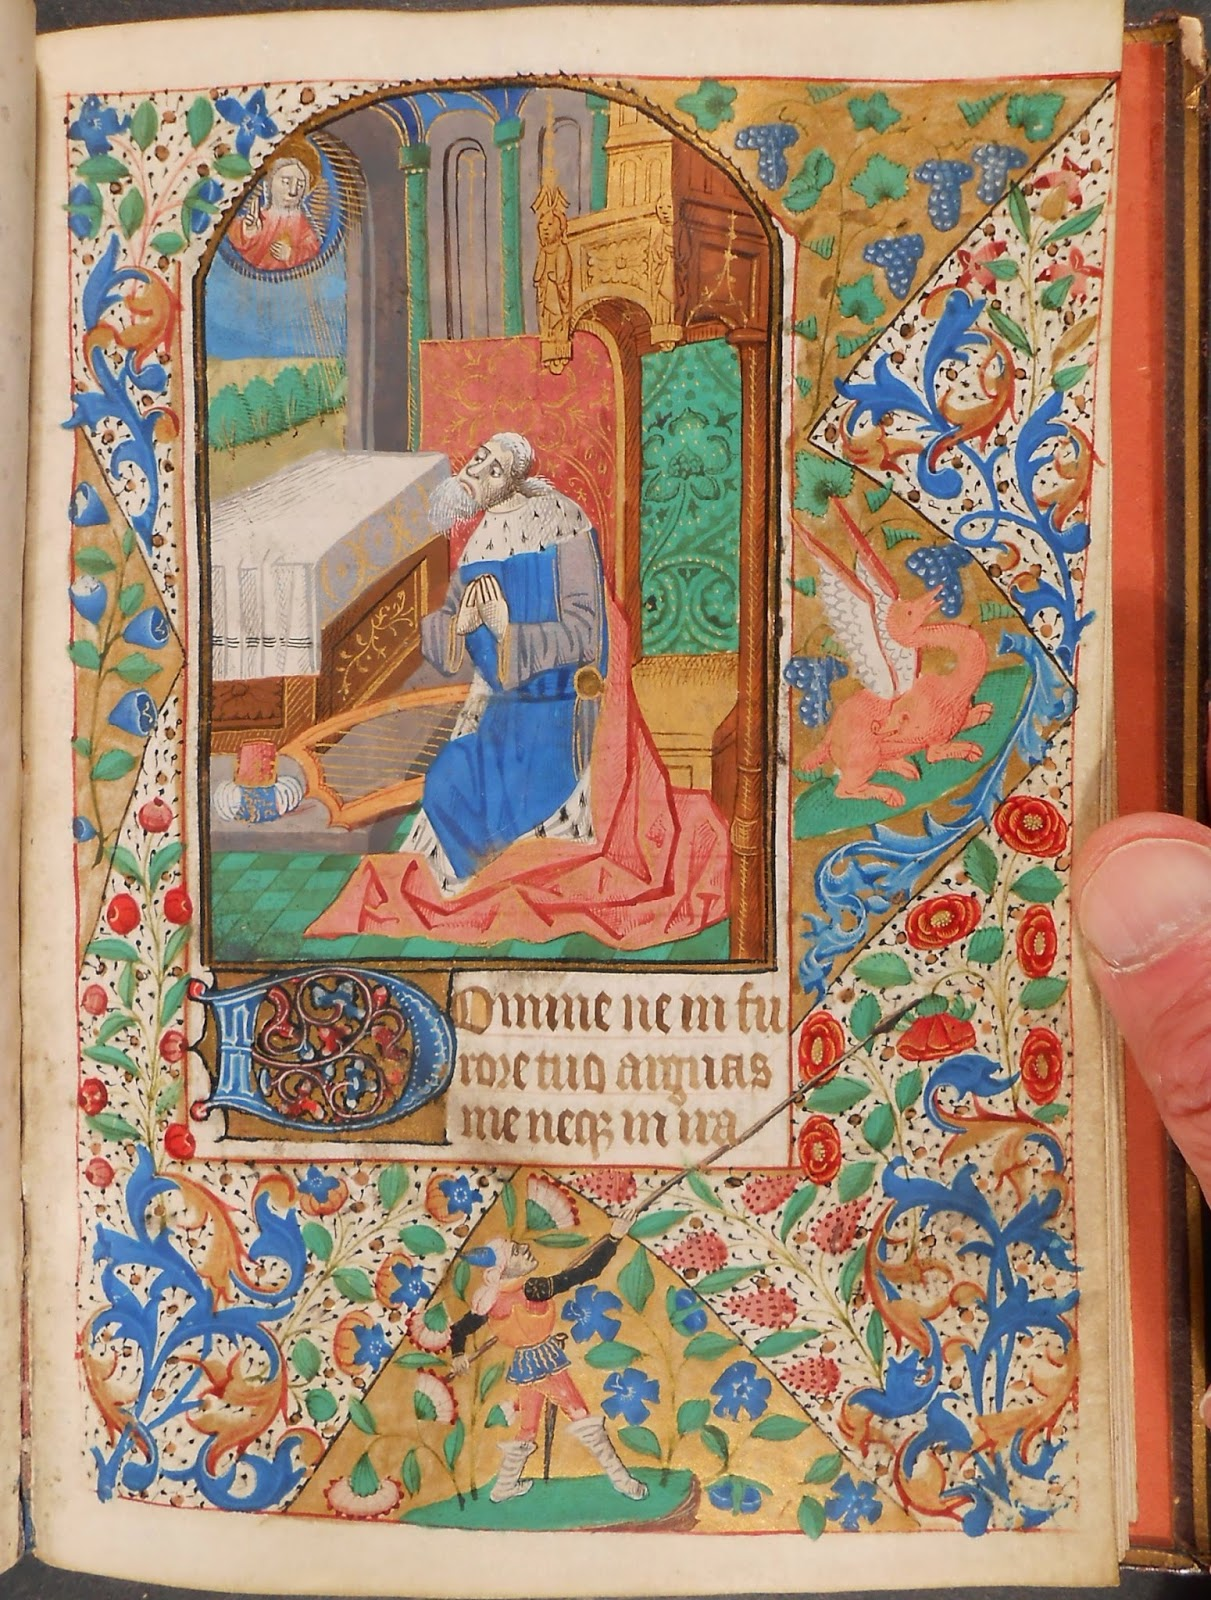 A heavily decorated page from a book of hours.